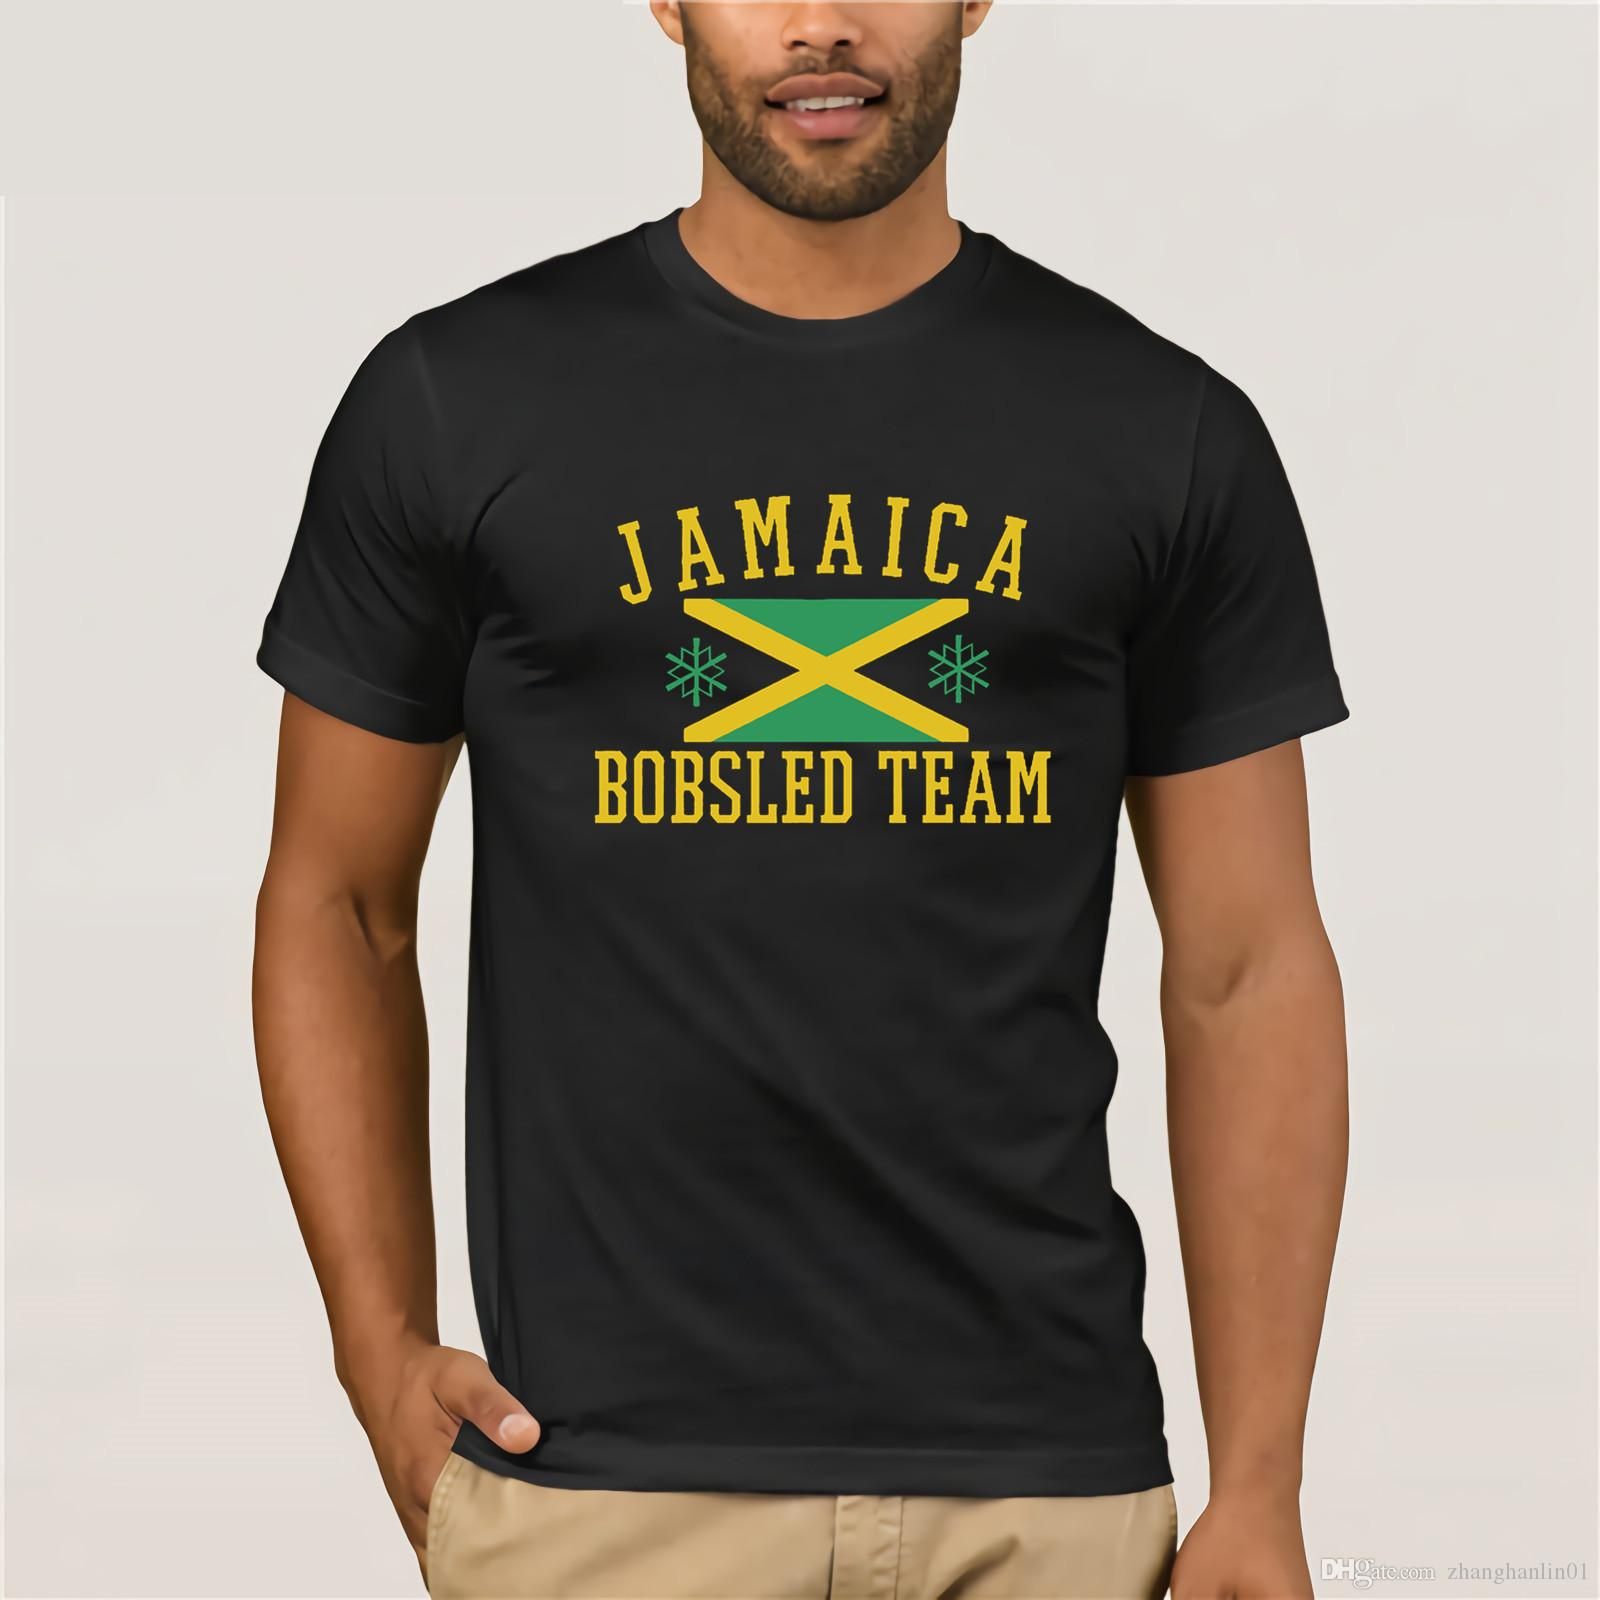 a0ff0c4327b 2019 Latest Men T Shirt Fashion Short Sleeve Hipster Tee Jamaican Flag  Bobsled Team Boy'S Black Short Sleeve Game Day T Shirt Unique T Shirts For  Sale ...